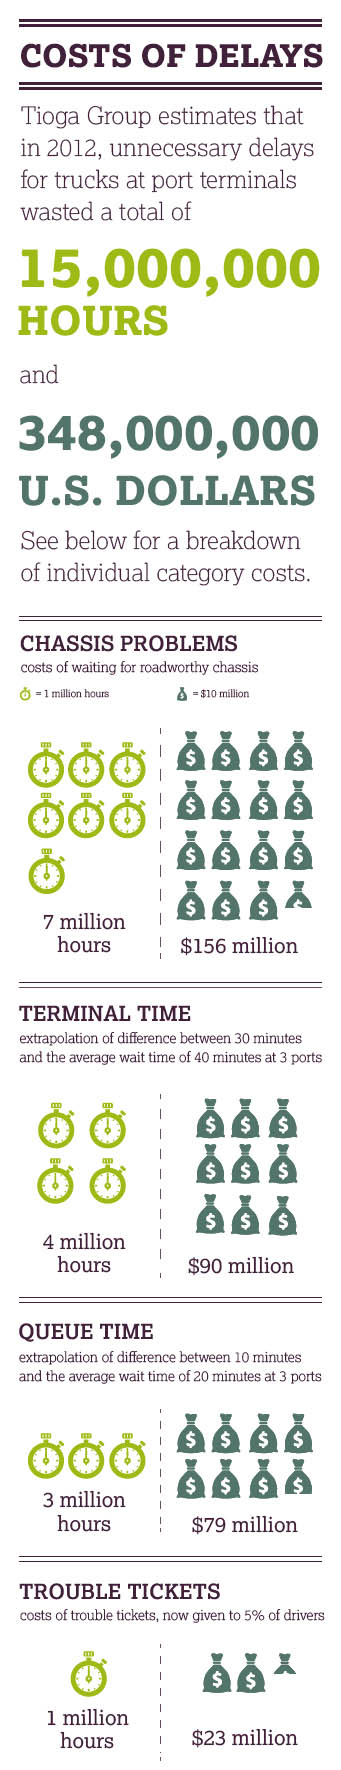 Delays Cost Trucking Drayage Infographic